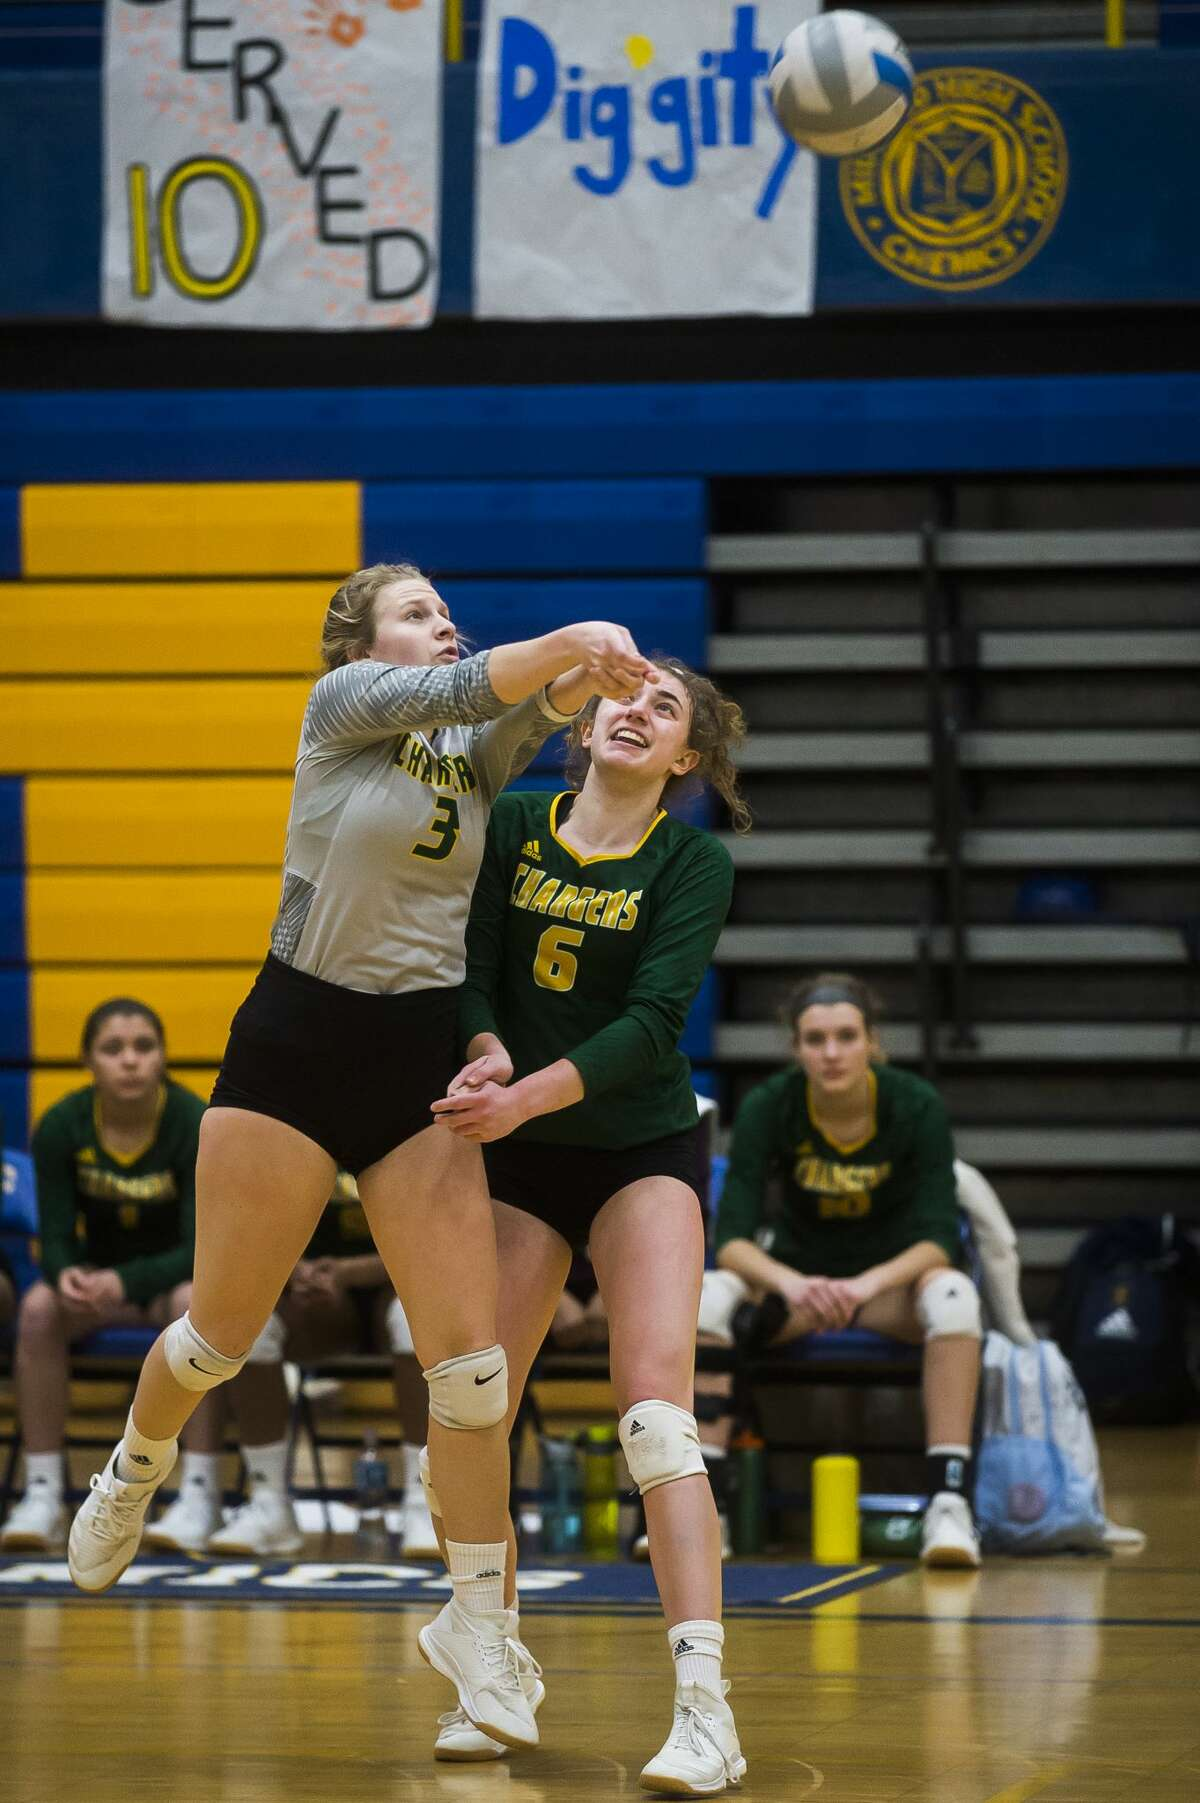 Dow's Jenna Somers, left, and Francesca Queary, right, both move to bump the ball during the Chargers' district final against Mt. Pleasant Thursday, Nov. 7, 2019 at Midland High School. (Katy Kildee/kkildee@mdn.net)